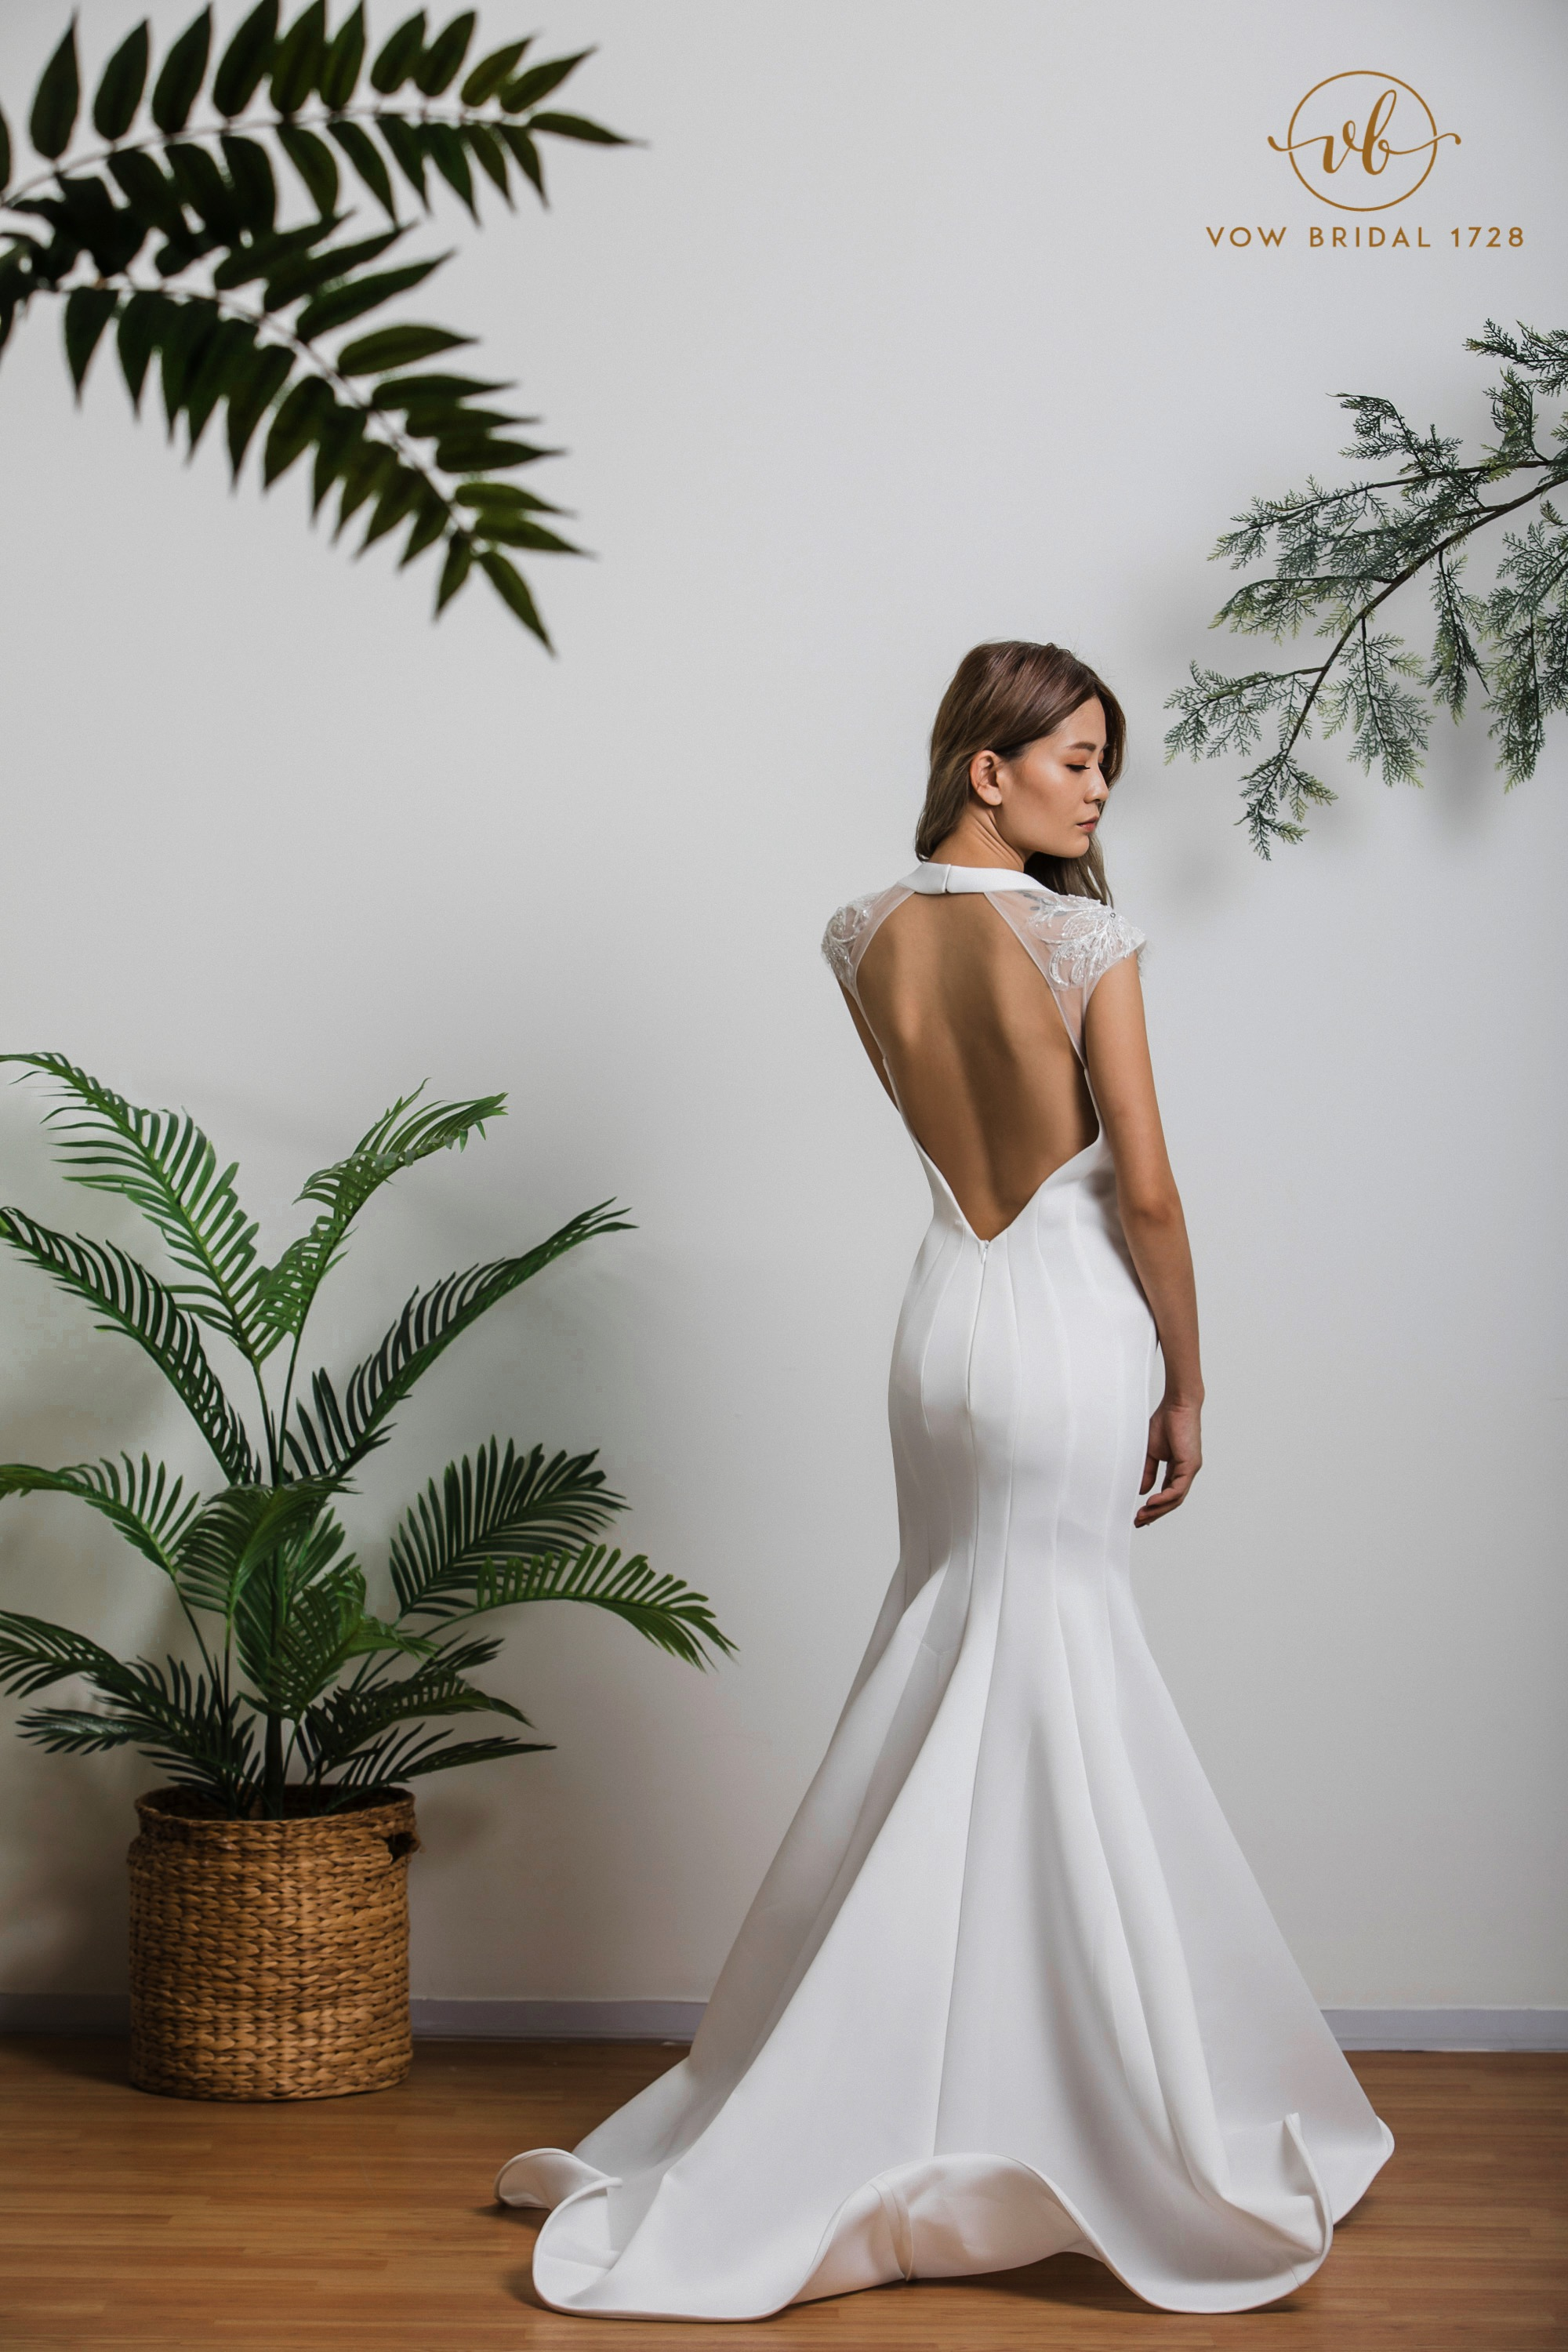 Wedding Gown And Evening Dress Malaysia | Vow Bridal 1728